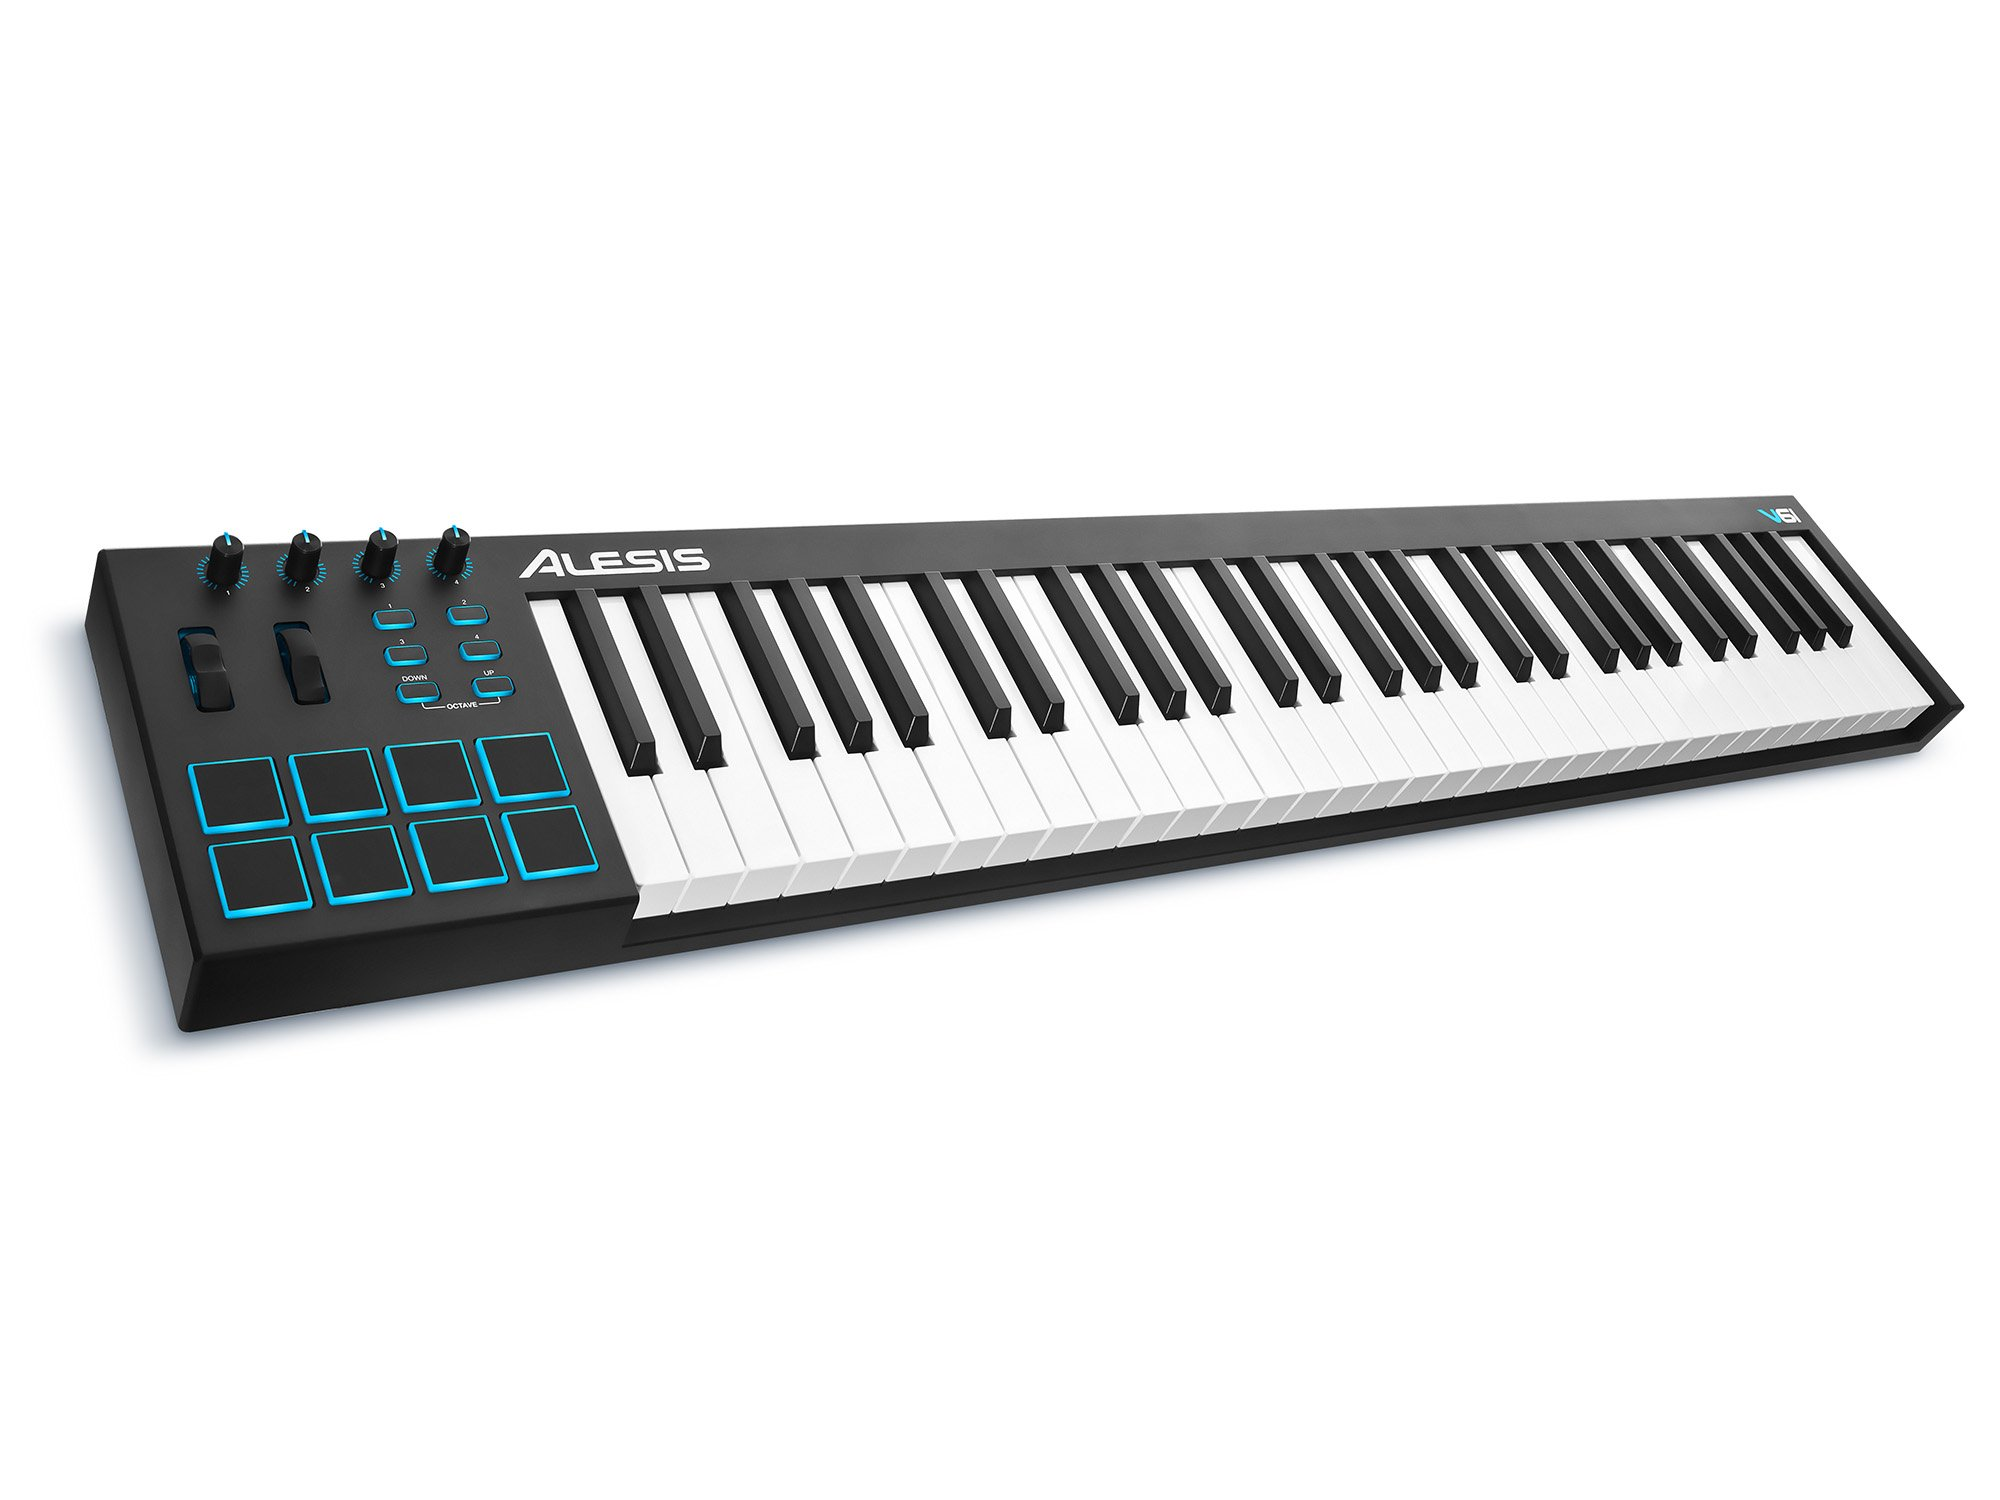 Alesis V61 | 61 Key USB MIDI Keyboard Controller with 8 Backlit Pads, 4 Assignable Knobs and Buttons, Plus a Professional Software Suite with ProTools | First Included by Alesis